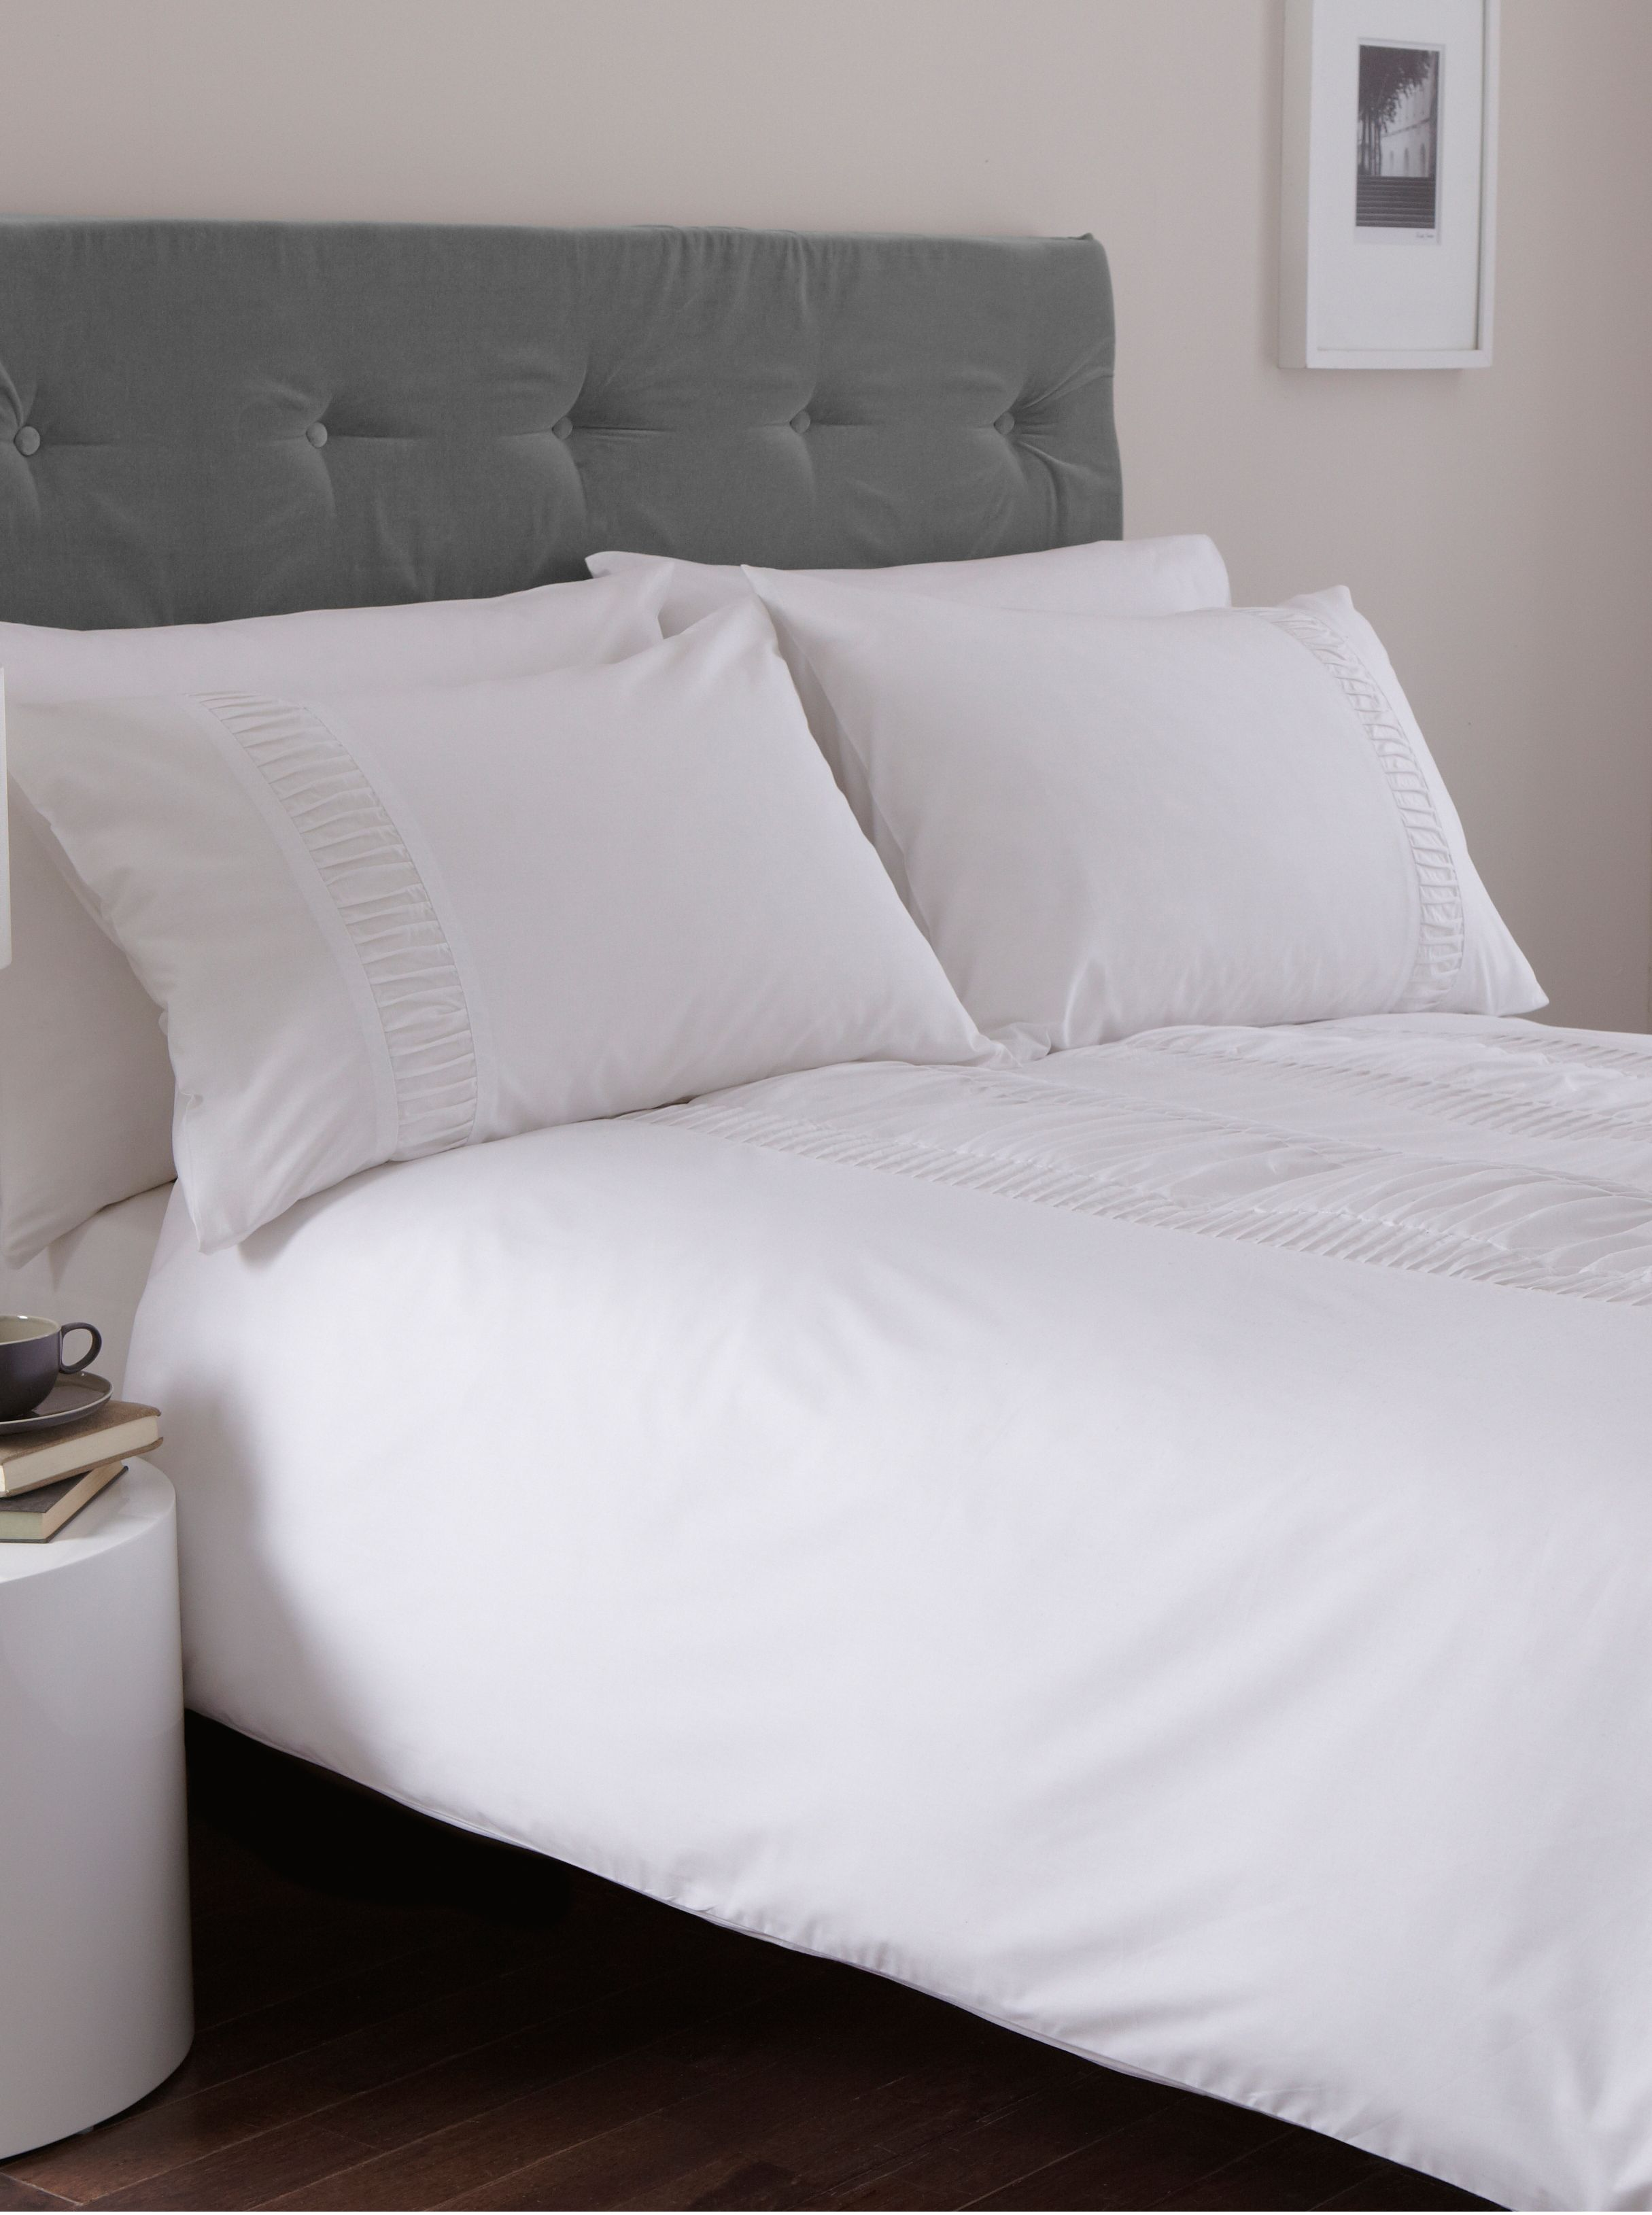 Simplicity superking duvet cover white